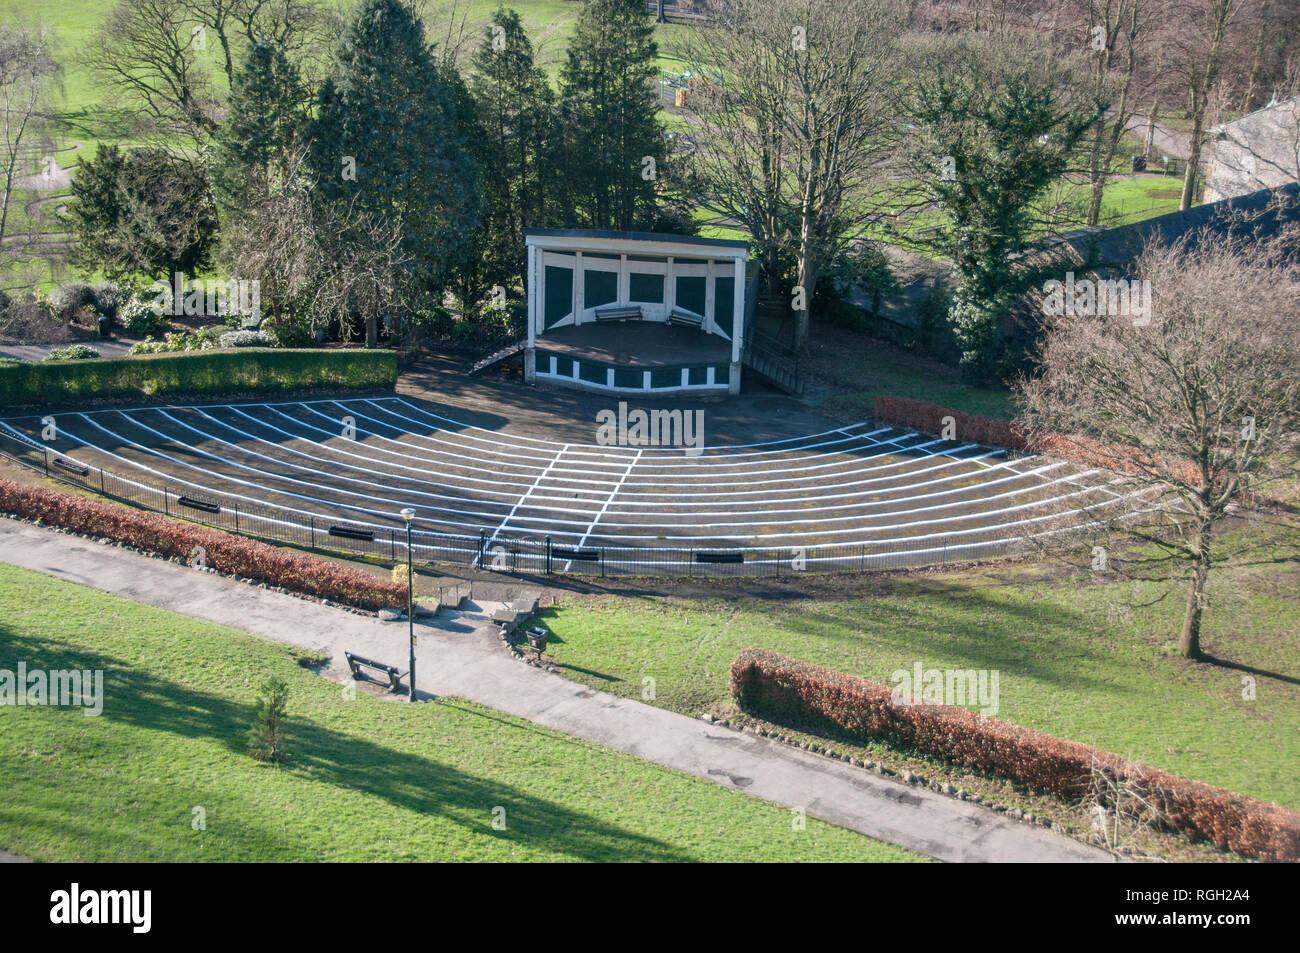 The Bandstand situated in the shadow of Clitheroe Castle, in the heart of the Ribble Valley. - Stock Image